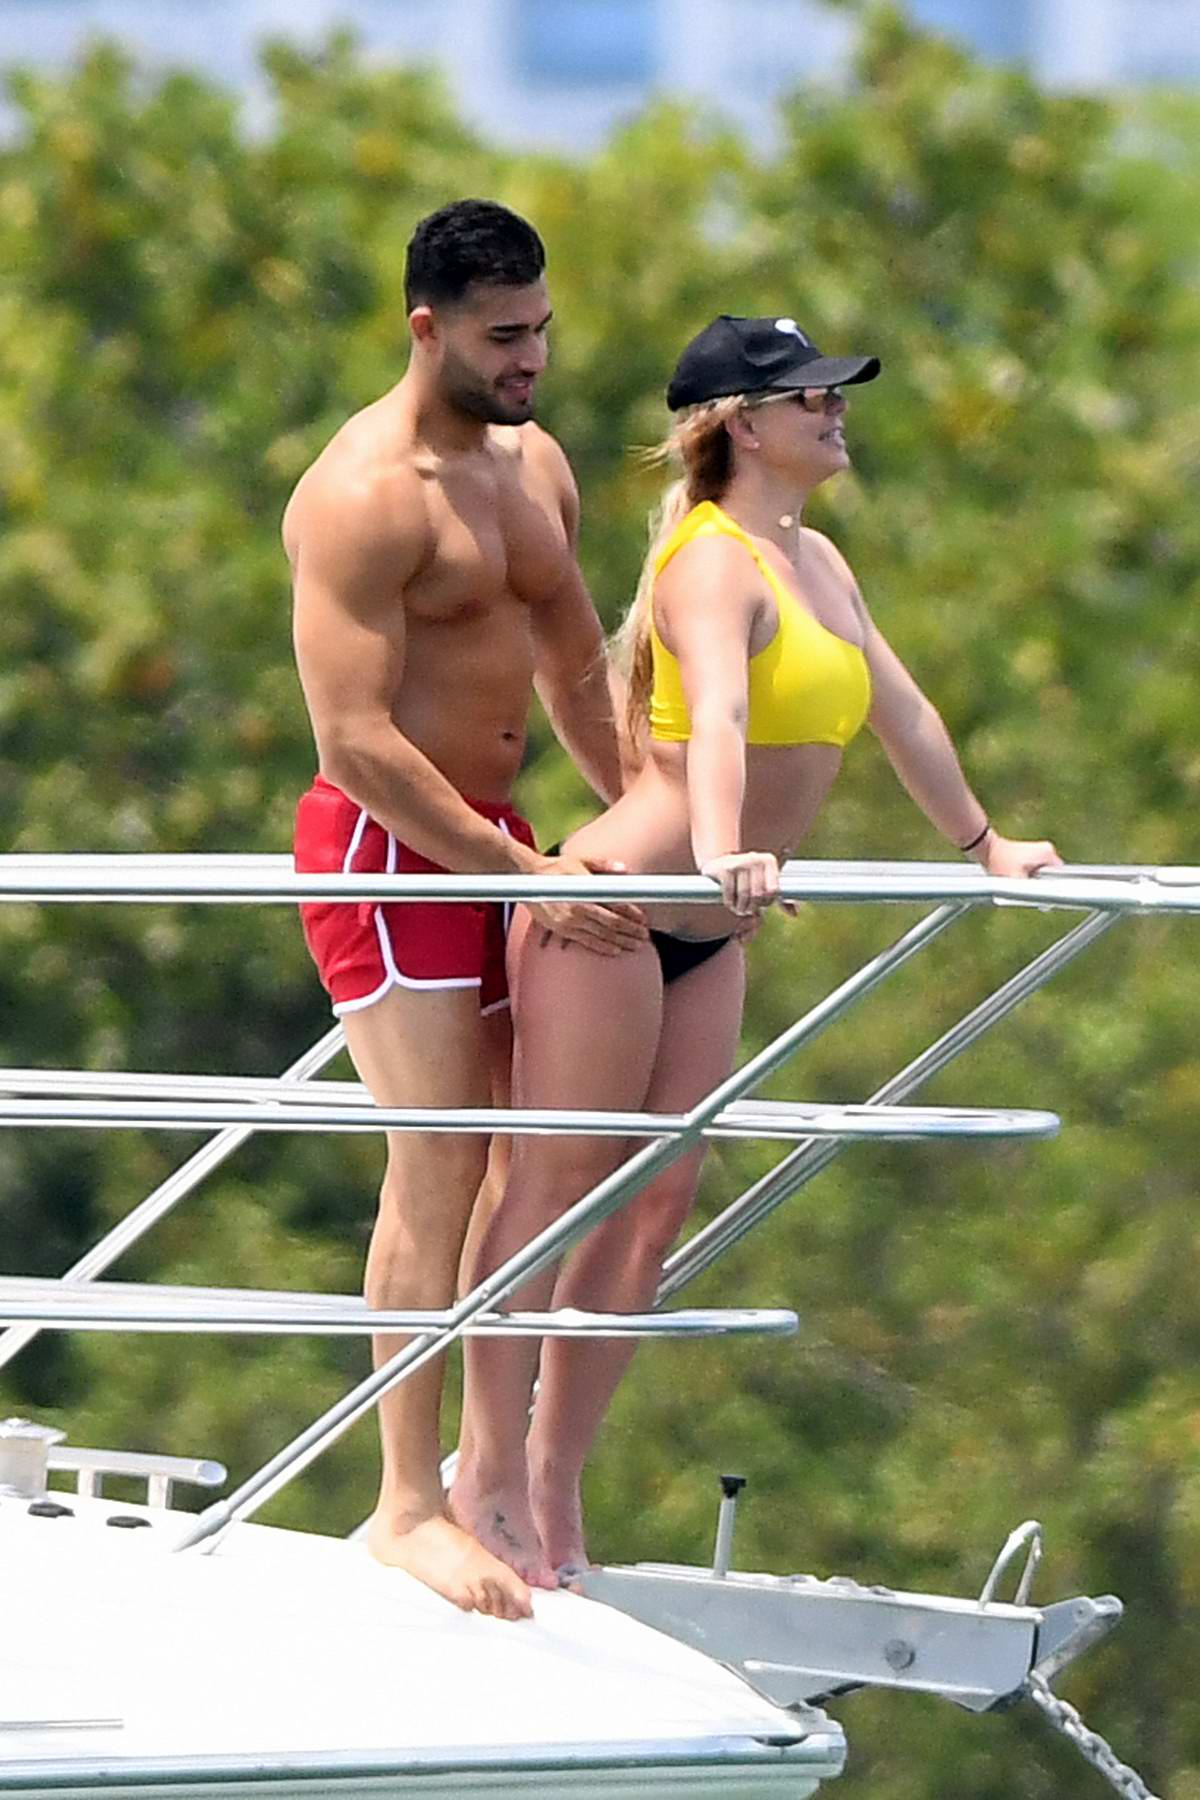 Britney Spears wears a yellow and black bikini while enjoying a day on a Yacht with boyfriend Sam Asghari in Miami, Florida